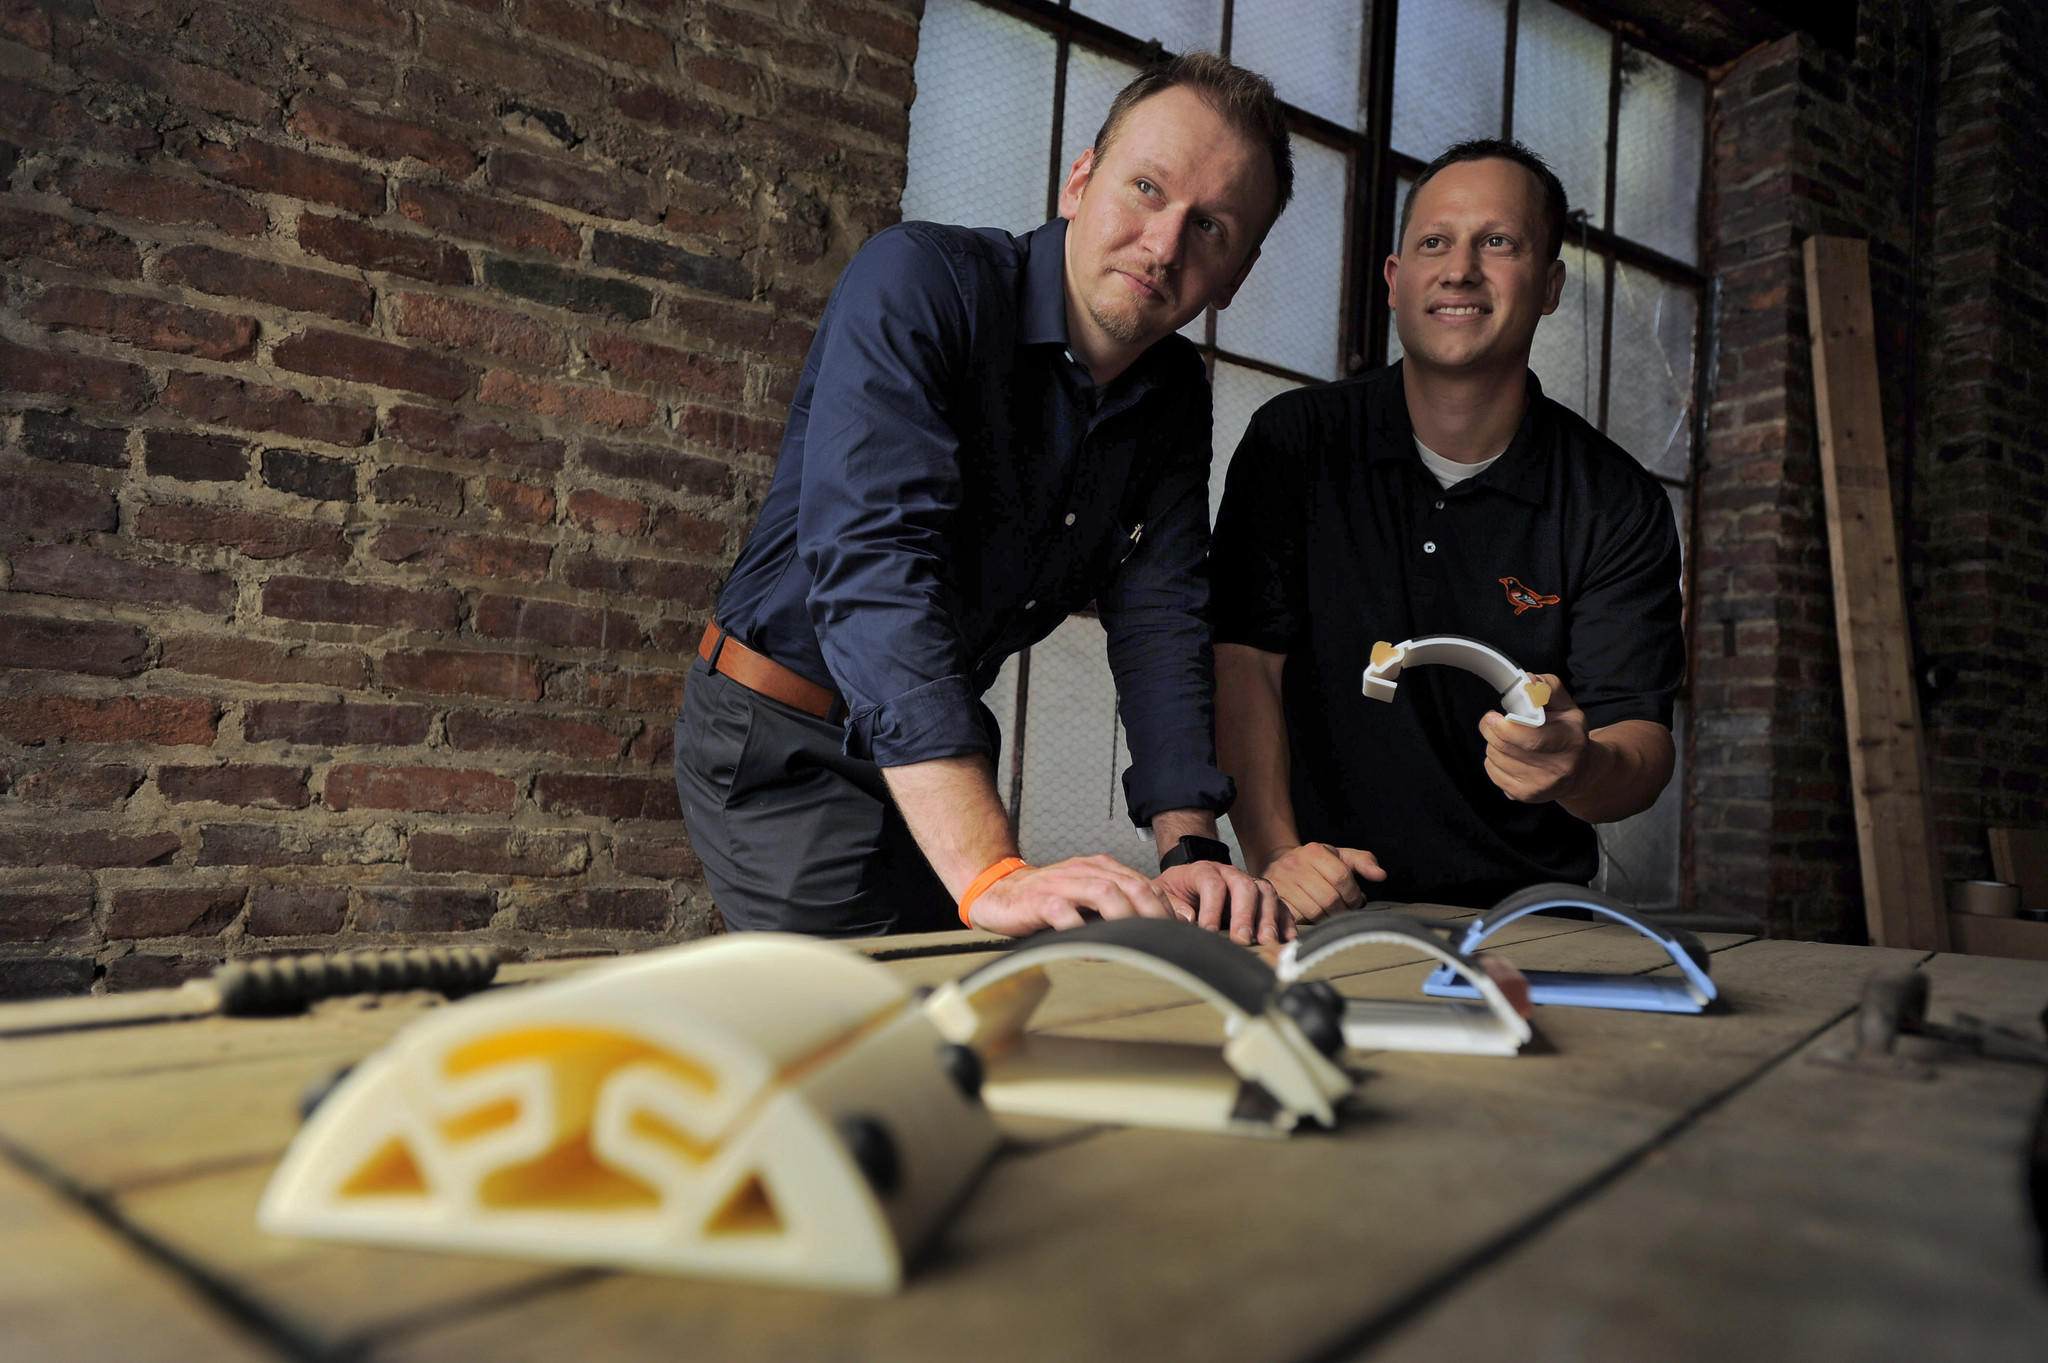 Gene Shirokobrod (left) and Corey Fleischer, who holds a 3D-printed prototype of the Kickstarter-funded model of the Arc at the Foundery.